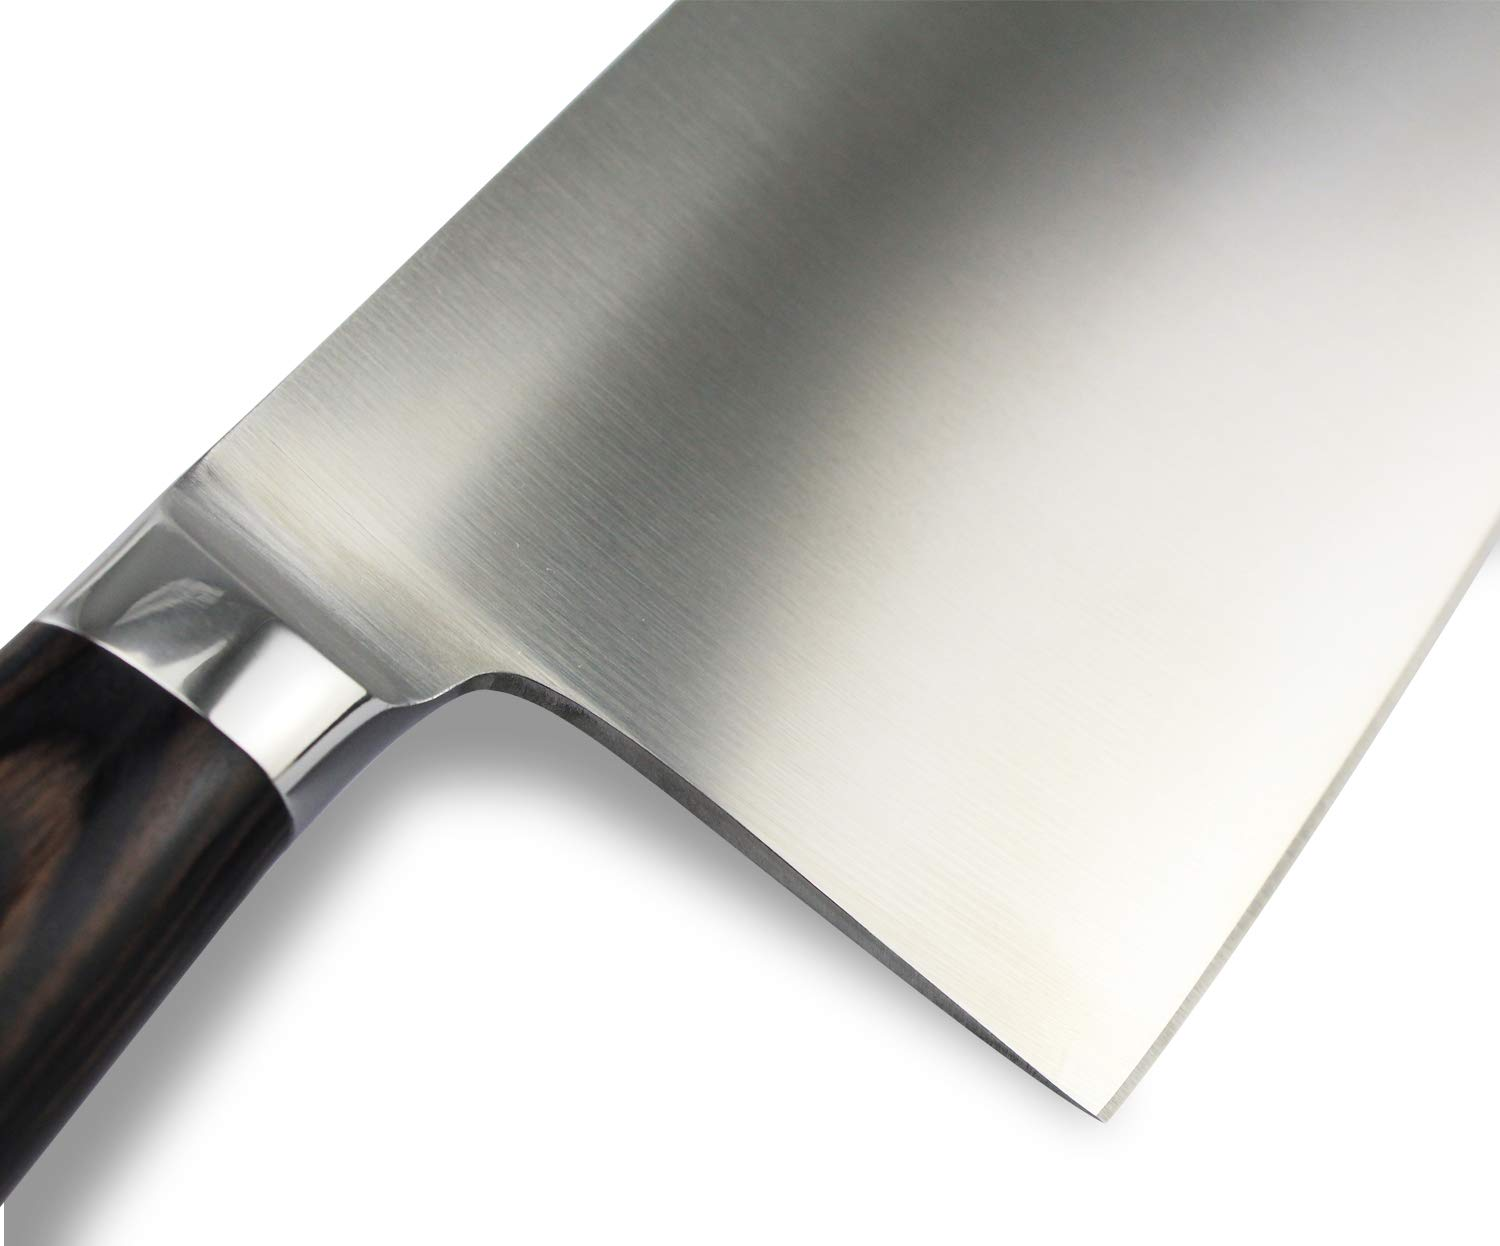 Imarku 7-inch stainless steel cleaver